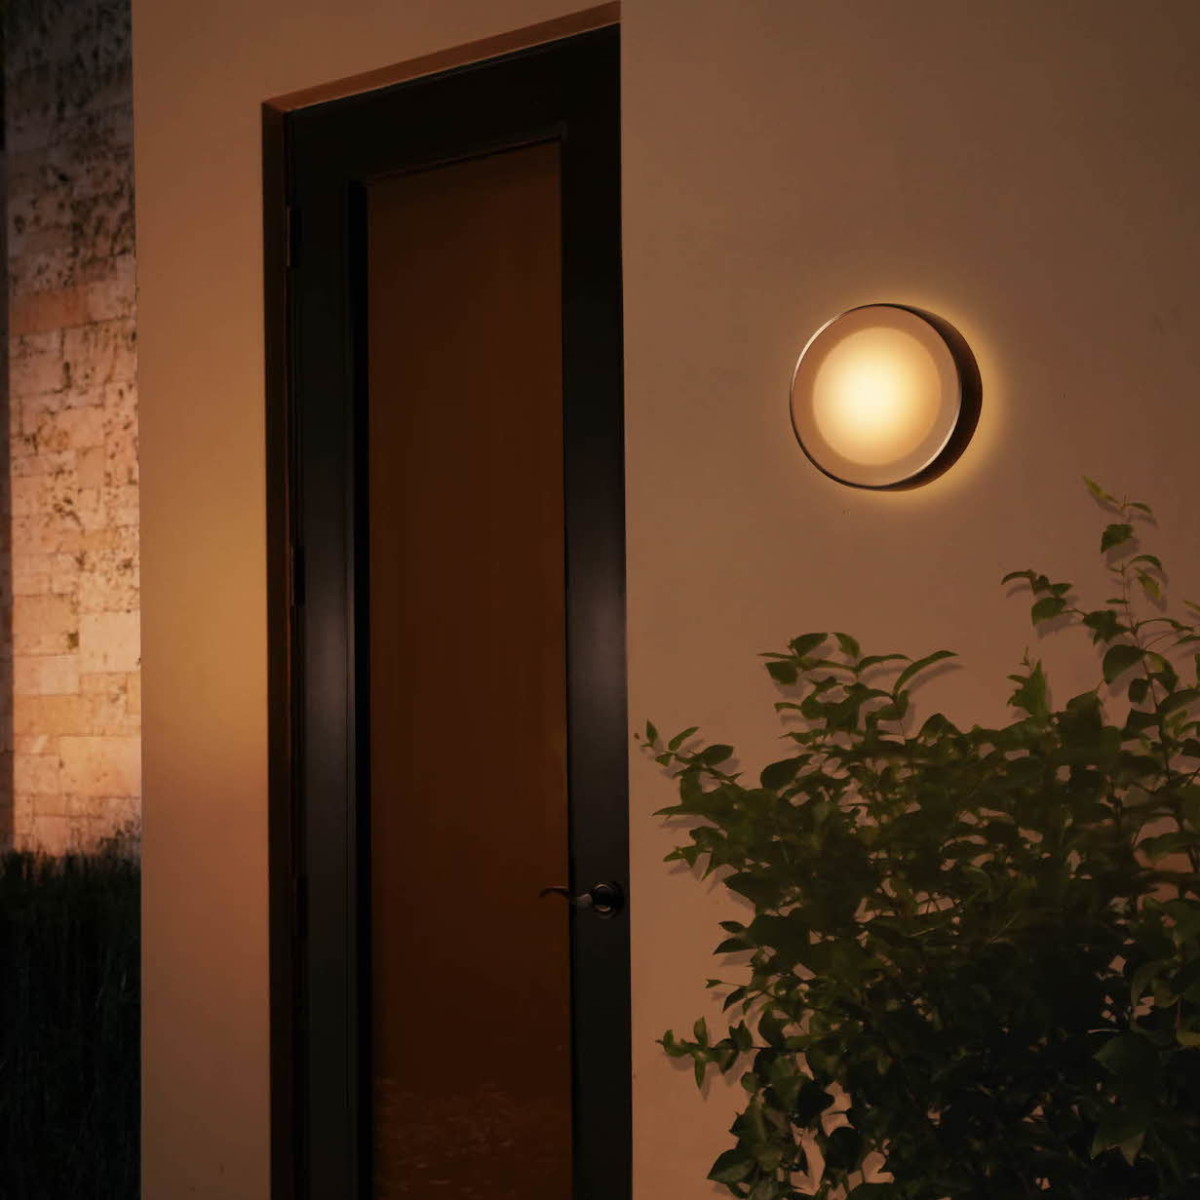 Philips Hue Daylo Outdoor Light Ring subtly brightens up your backyard space